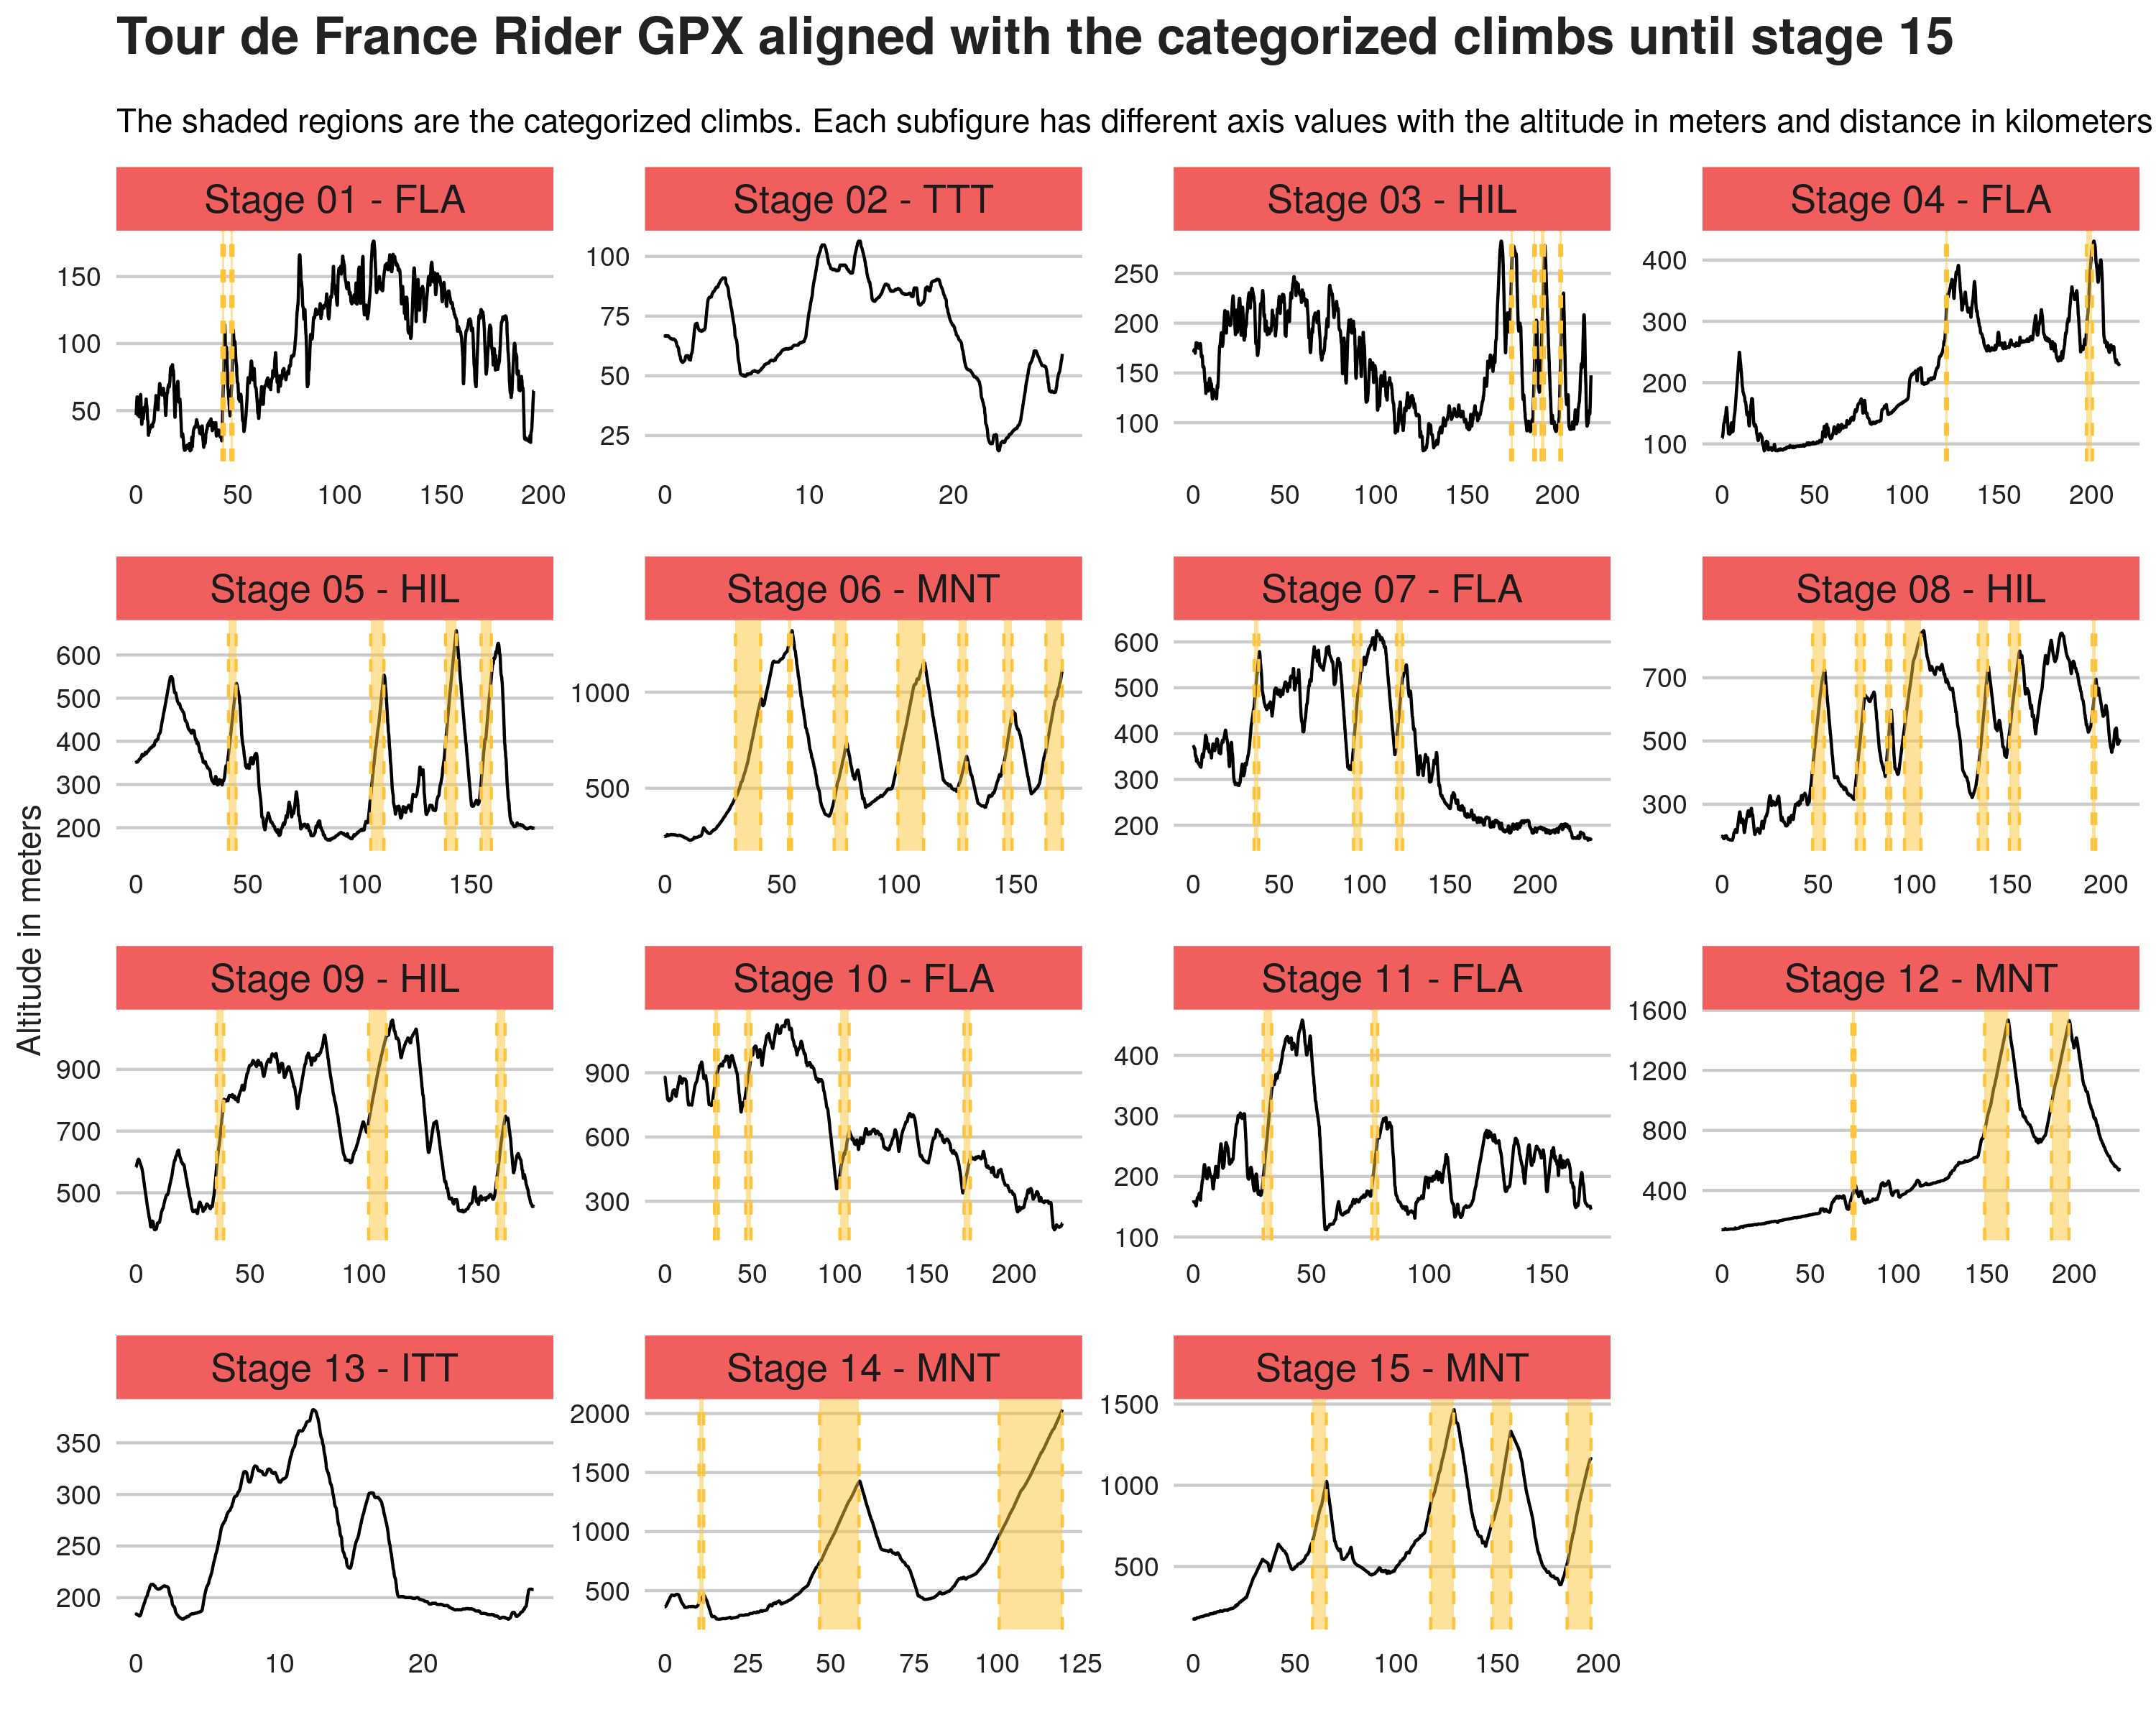 Tour de France 2019 profiles from Thibaut Pinot and Sébastien Reichenbach GPX data.